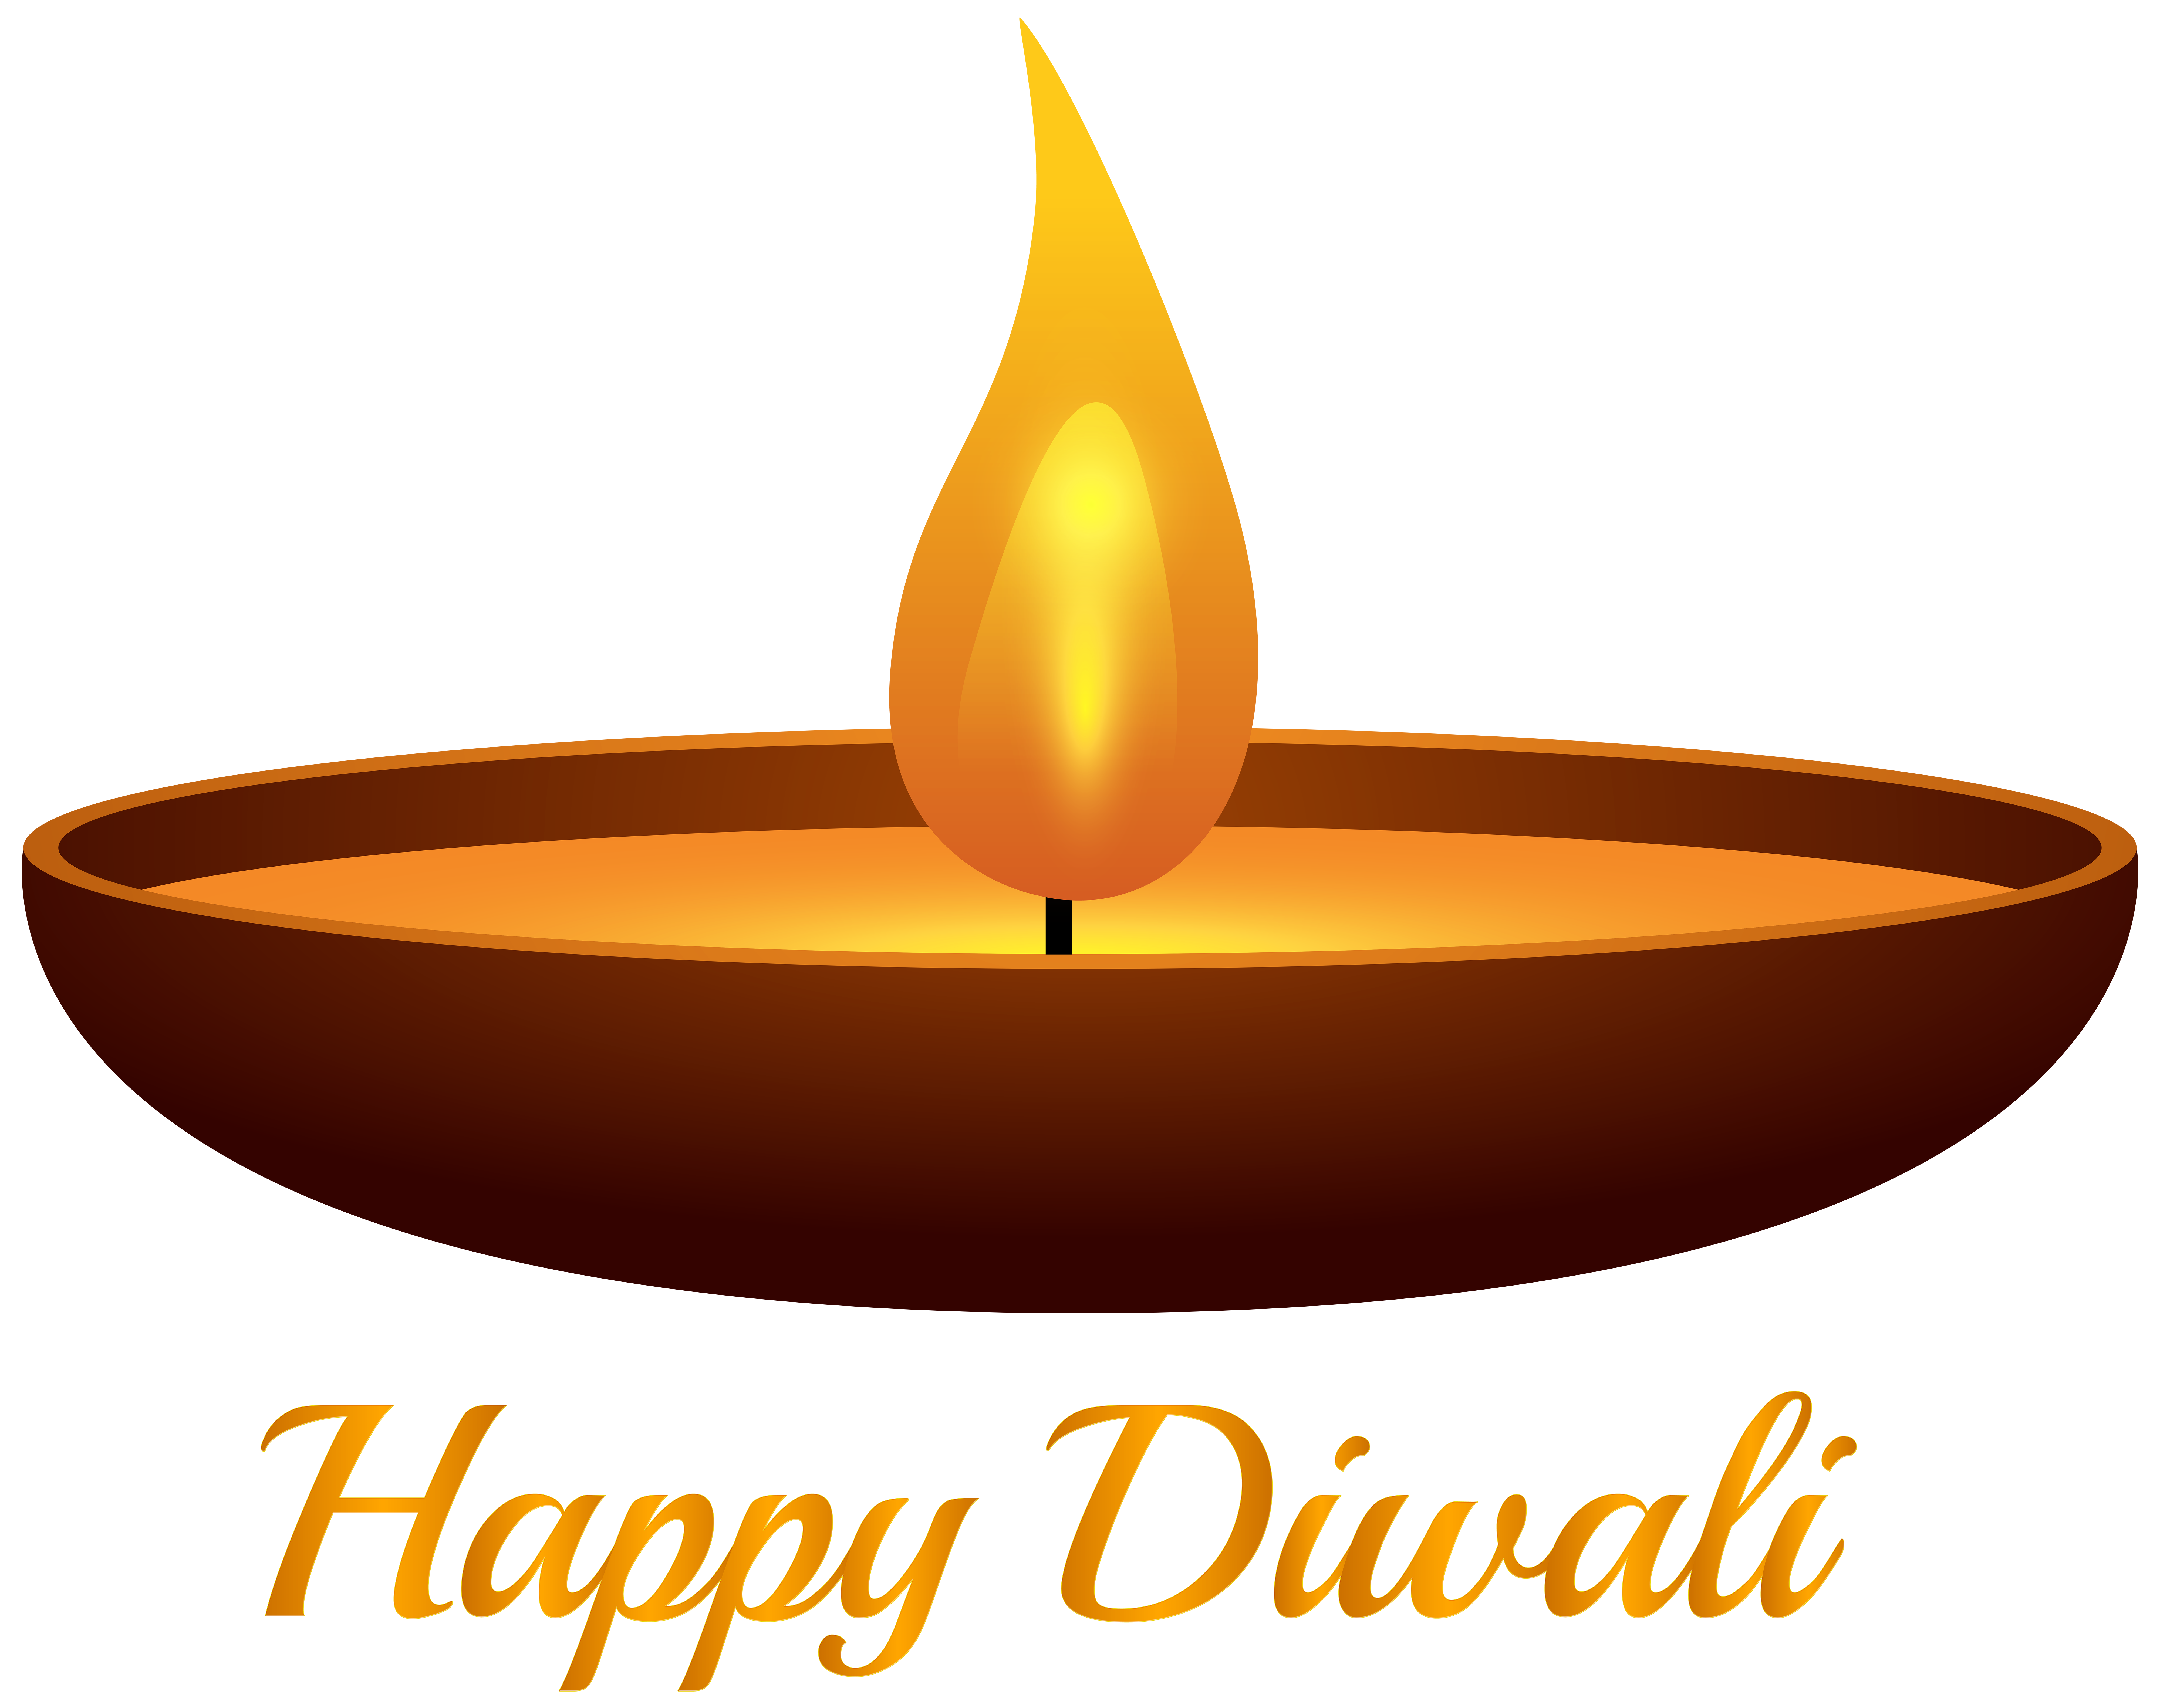 2017 clipart diwali. Happy candle png clip